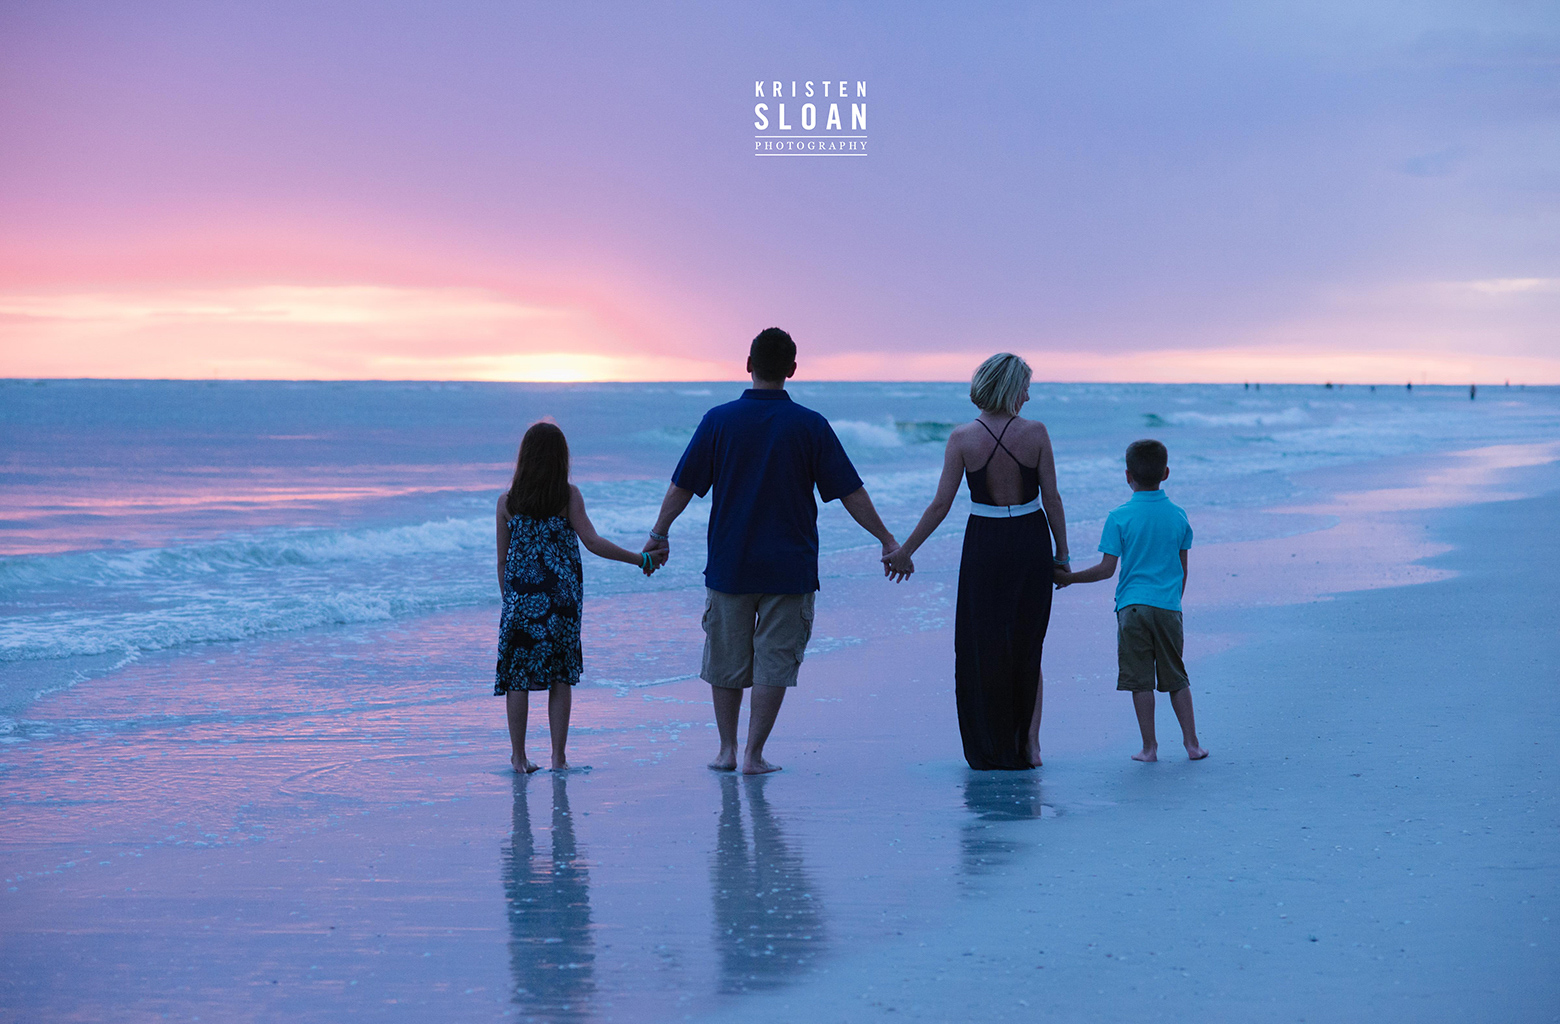 St Pete Beach Treasure Island Family Beach Photos at Sunset | Treasure Island Wedding Portrait Photographer | St Pete Beach Wedding Portrait Photographer Kristen Sloan